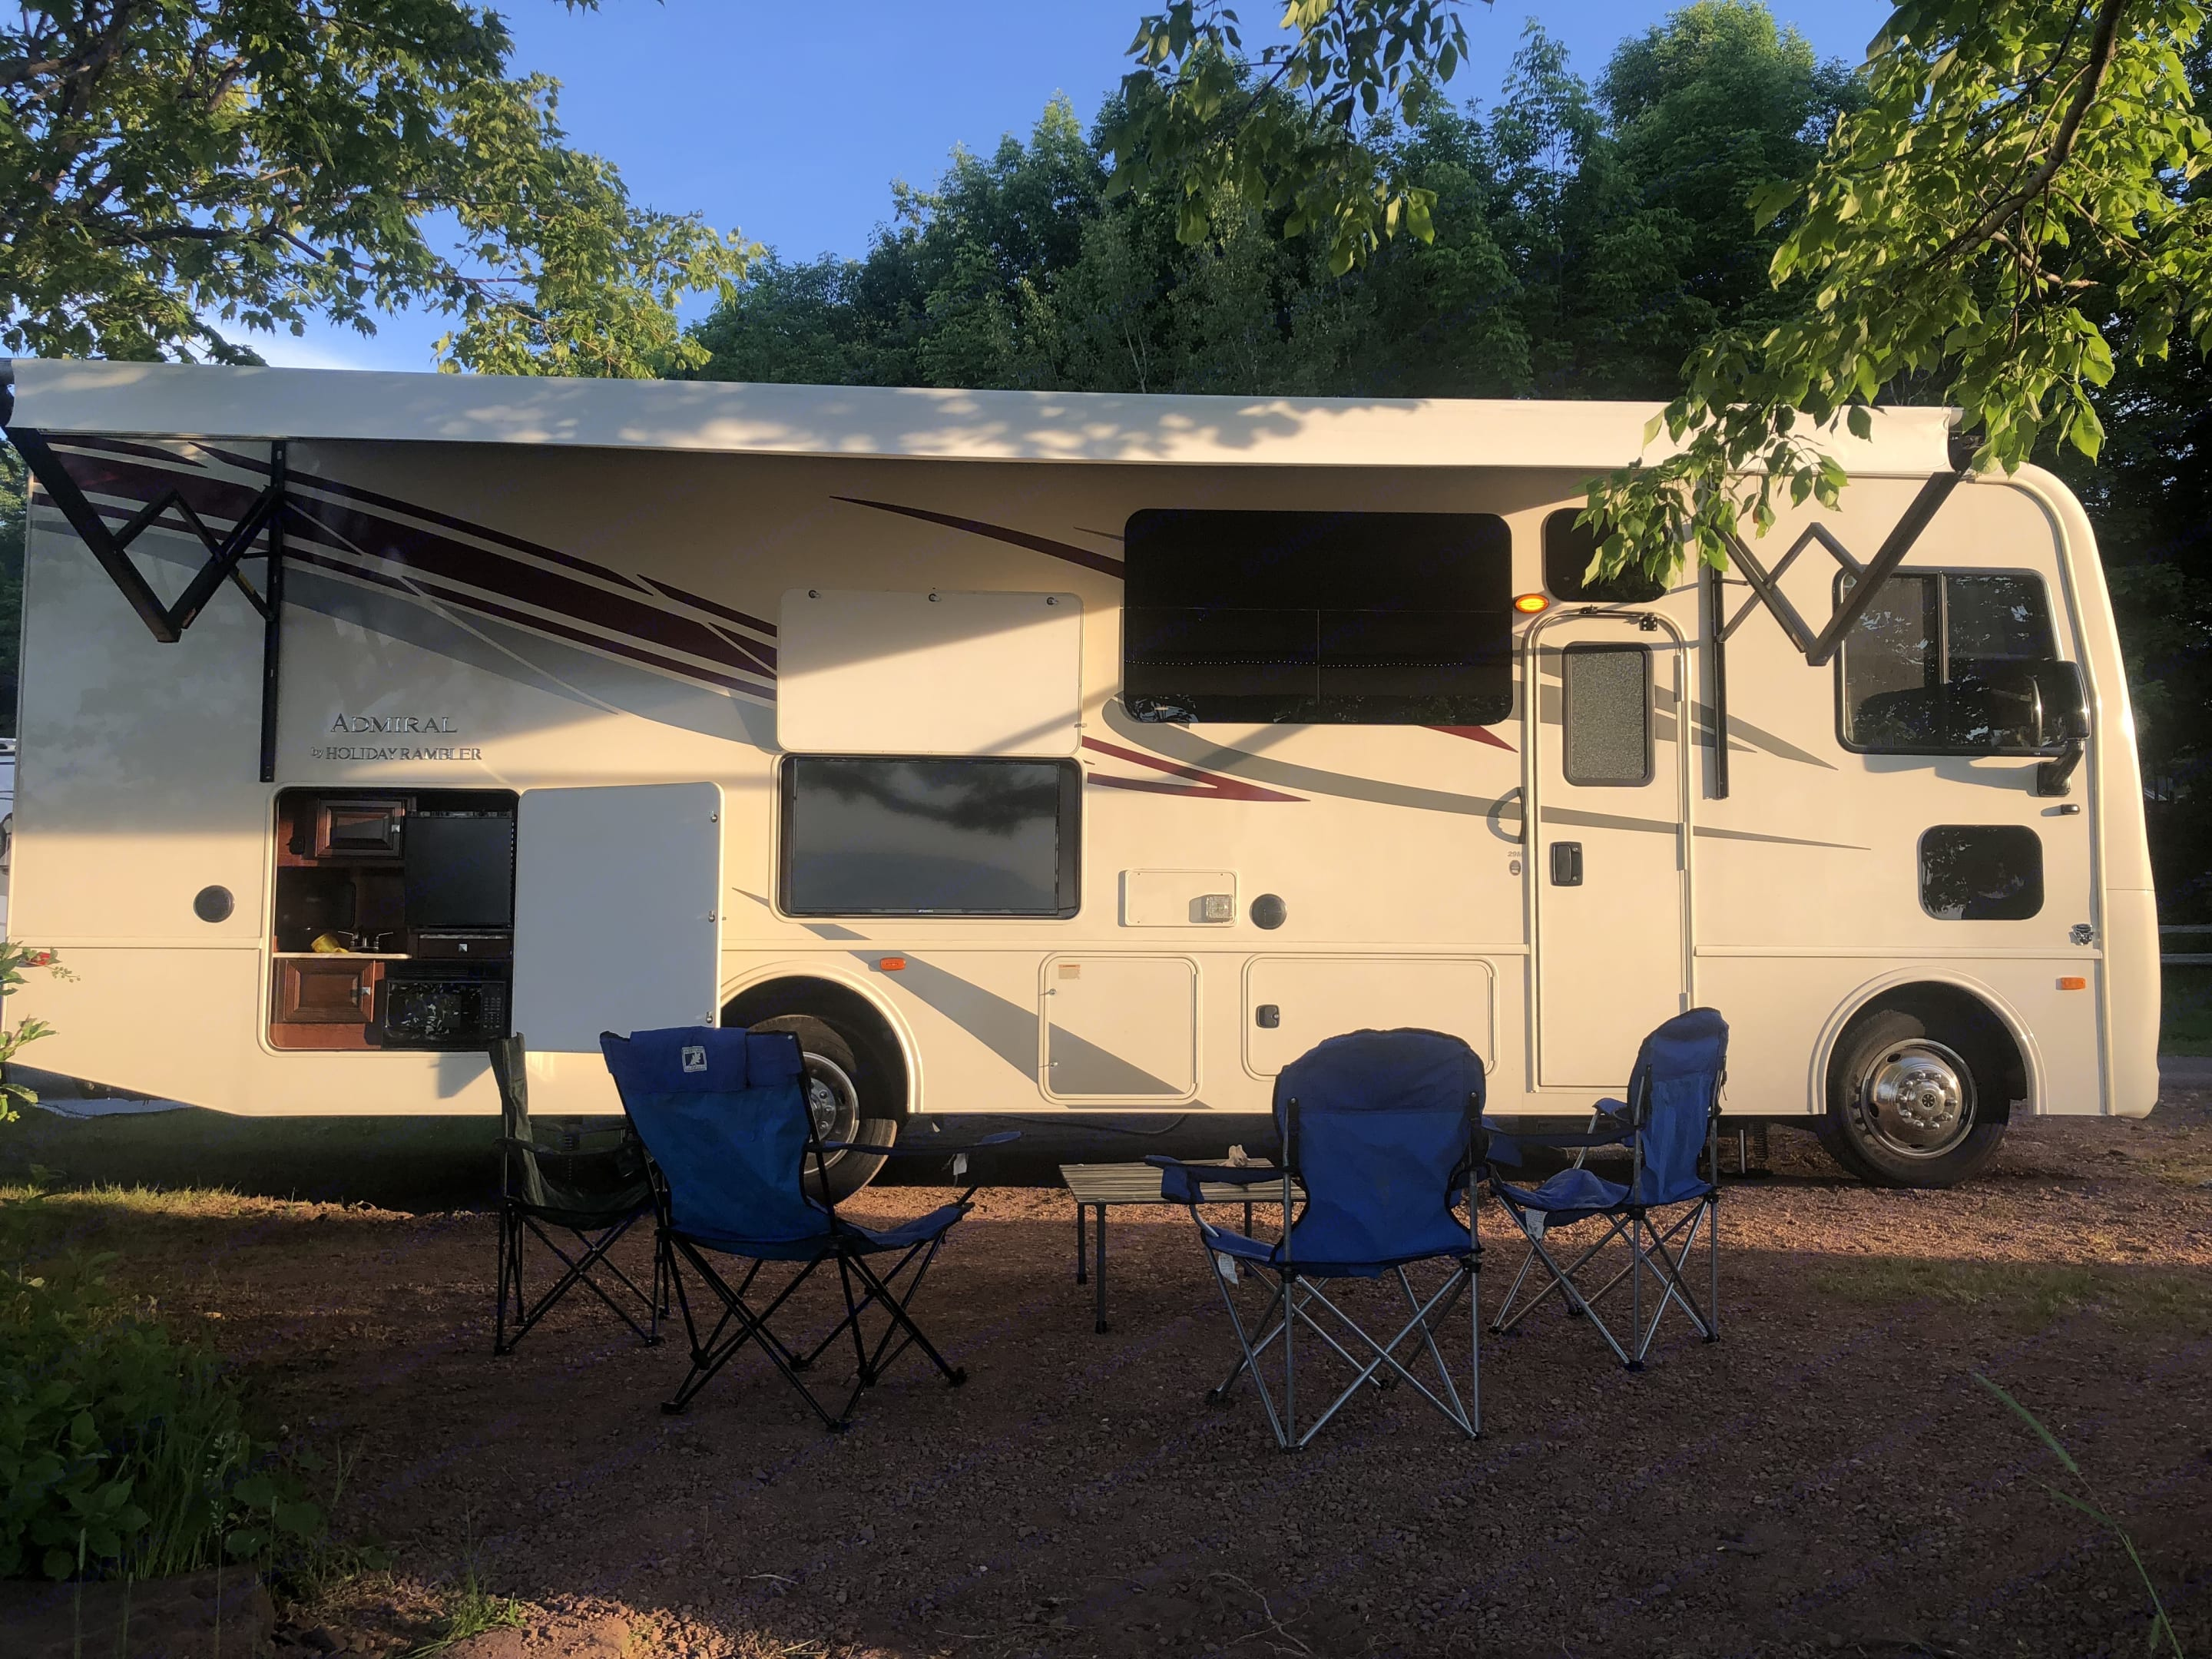 The Fun side with RV awning opened, TV, bar area, with camp chairs (also included). Ready for adventure!. HolidayRambler Admiral 2019